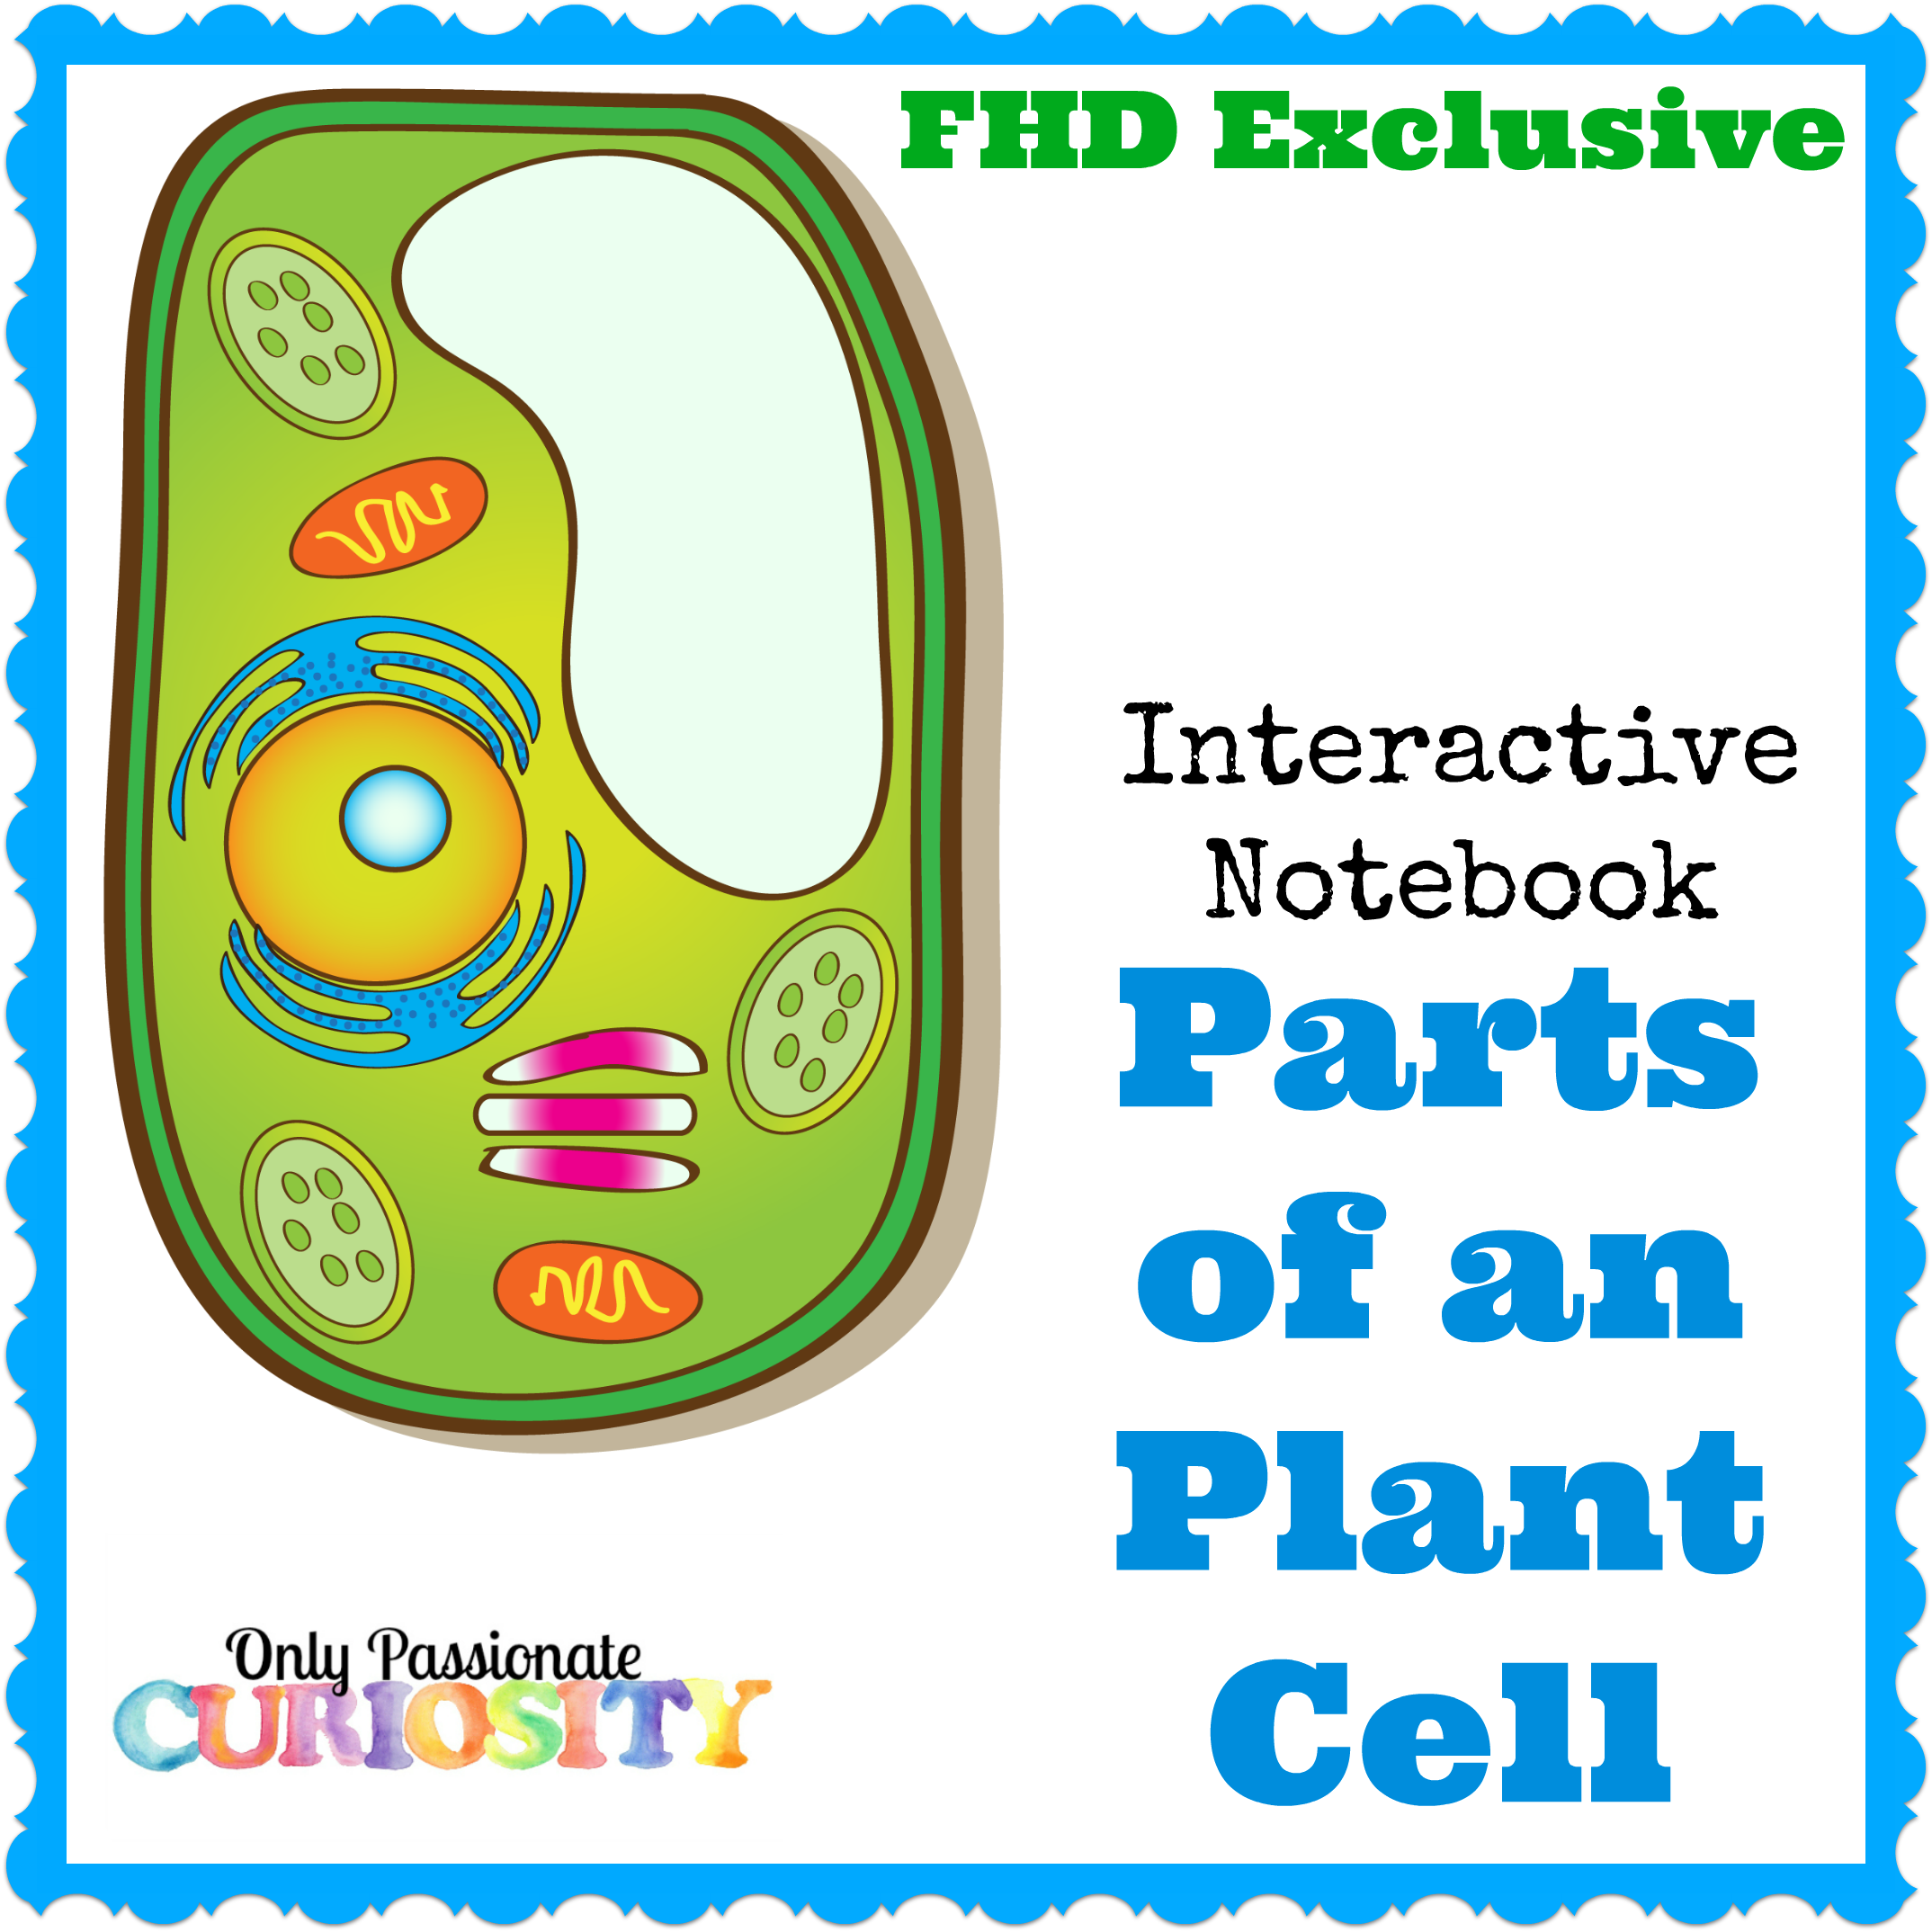 Notebook clipart interactive notebook. Free plant cell instant